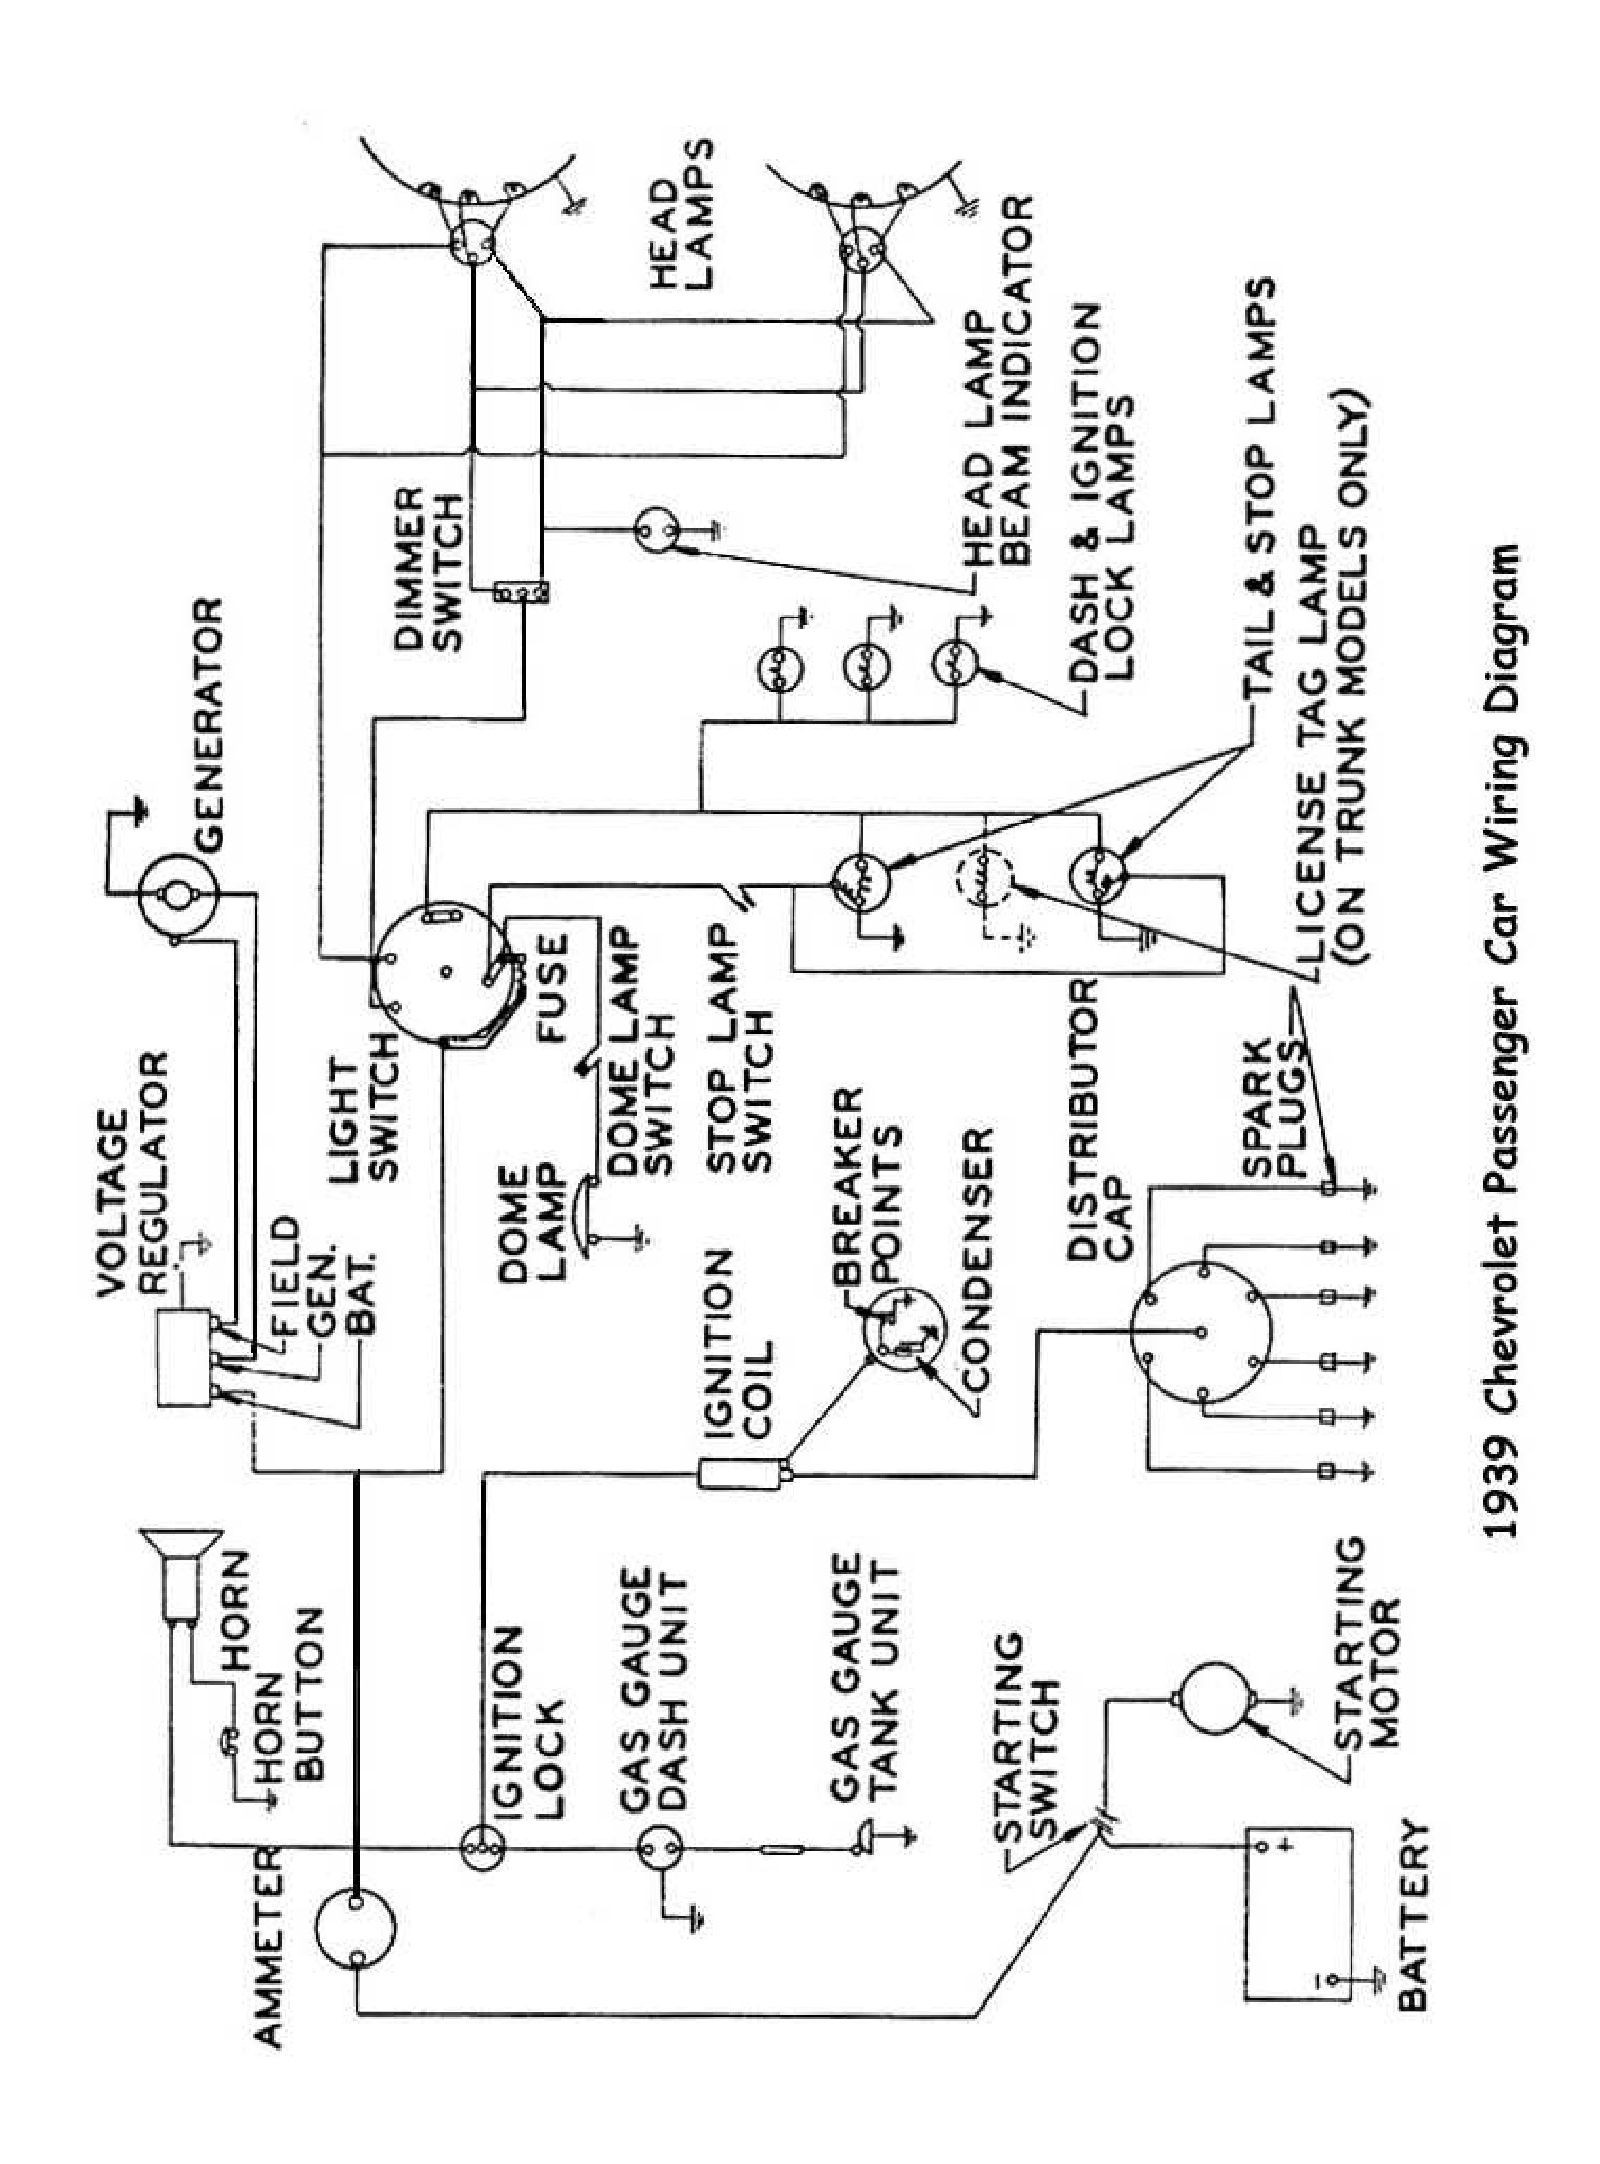 Car Ignition Circuit Diagram Chevy Wiring Diagrams